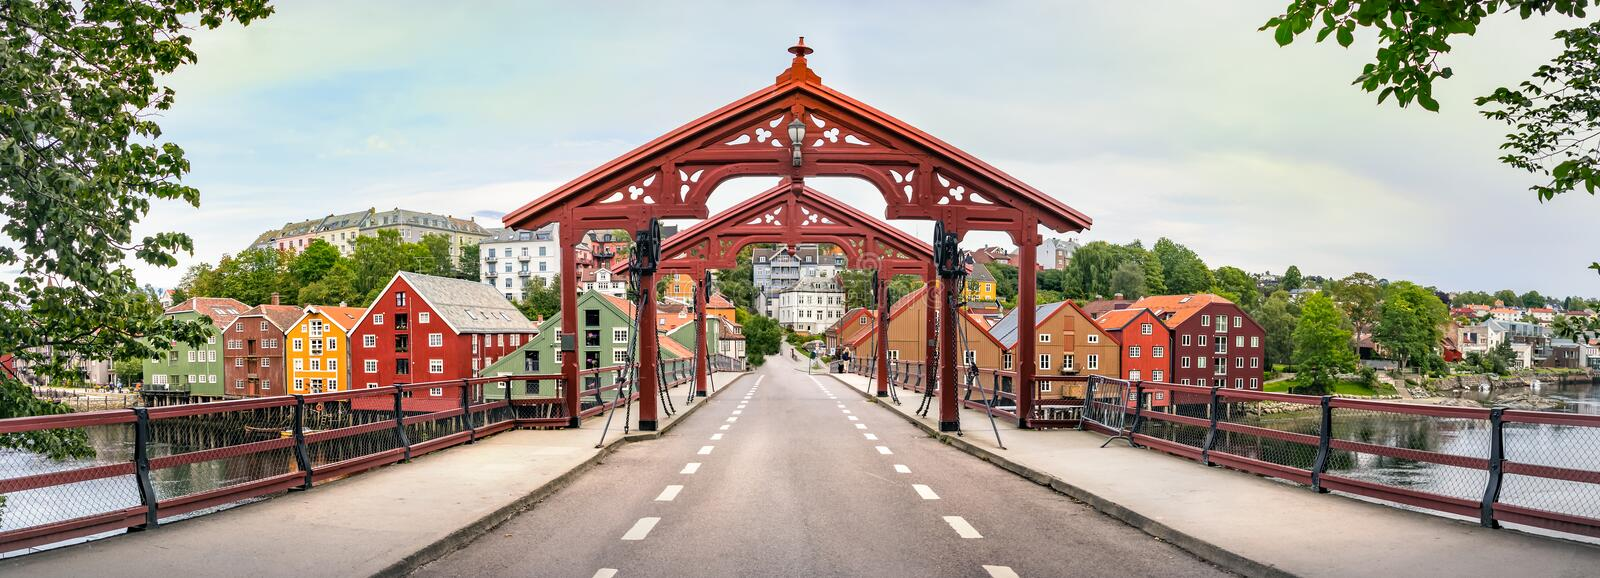 Panorama of the Old Town Bridge or Gamle Bybro of Trondheim, Norway stock images